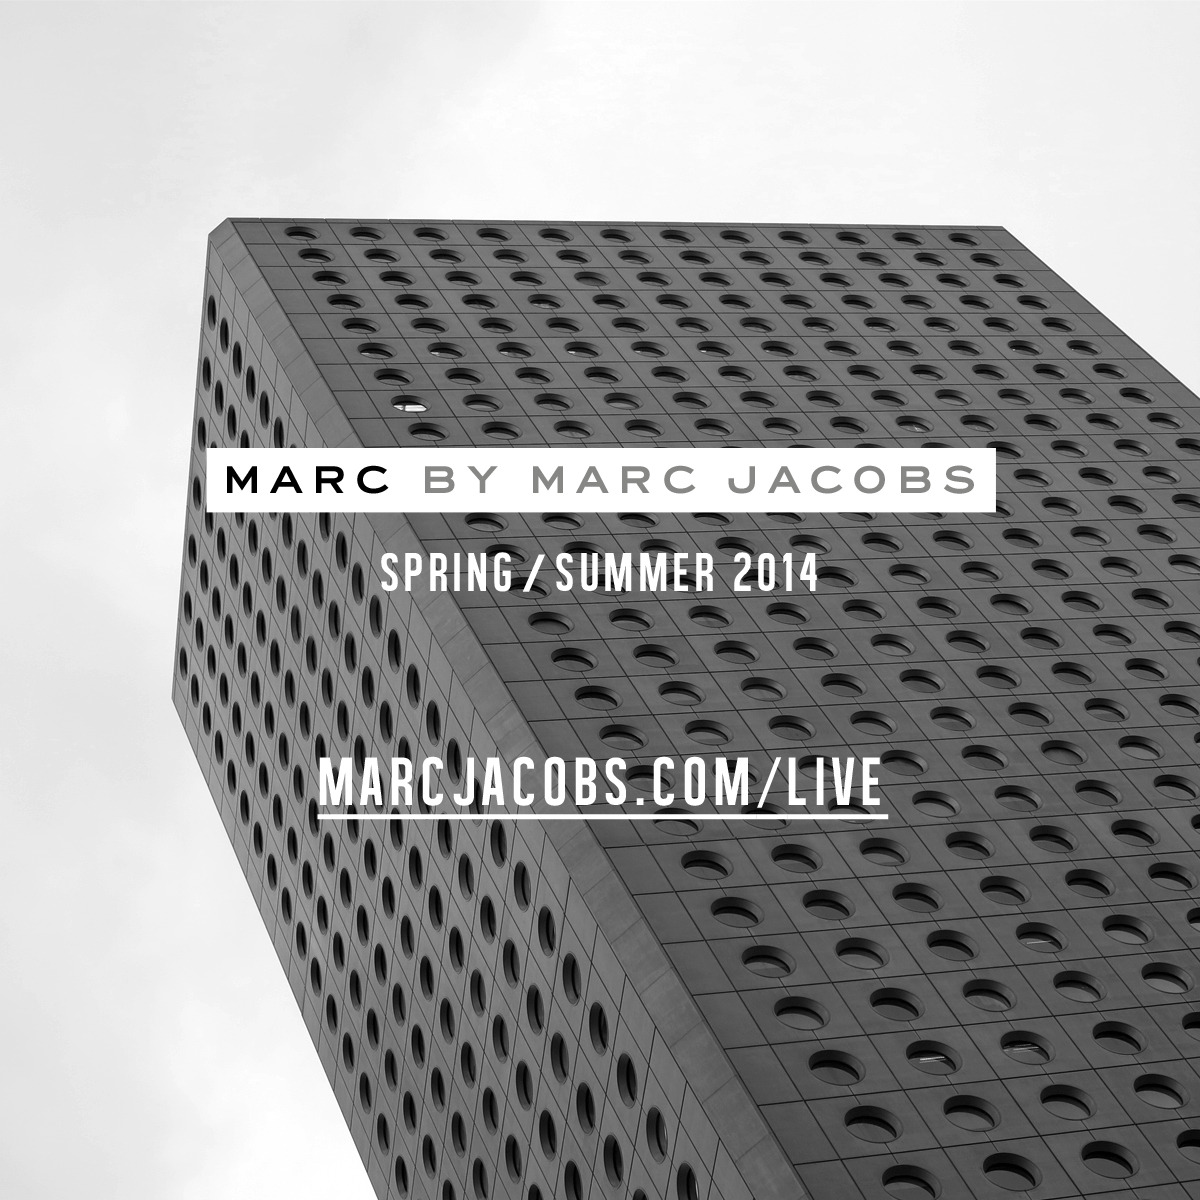 Please take your seats, Marc by Marc Jacobs SS14 is about to begin!  Tune in here: marcjacobs.com/live